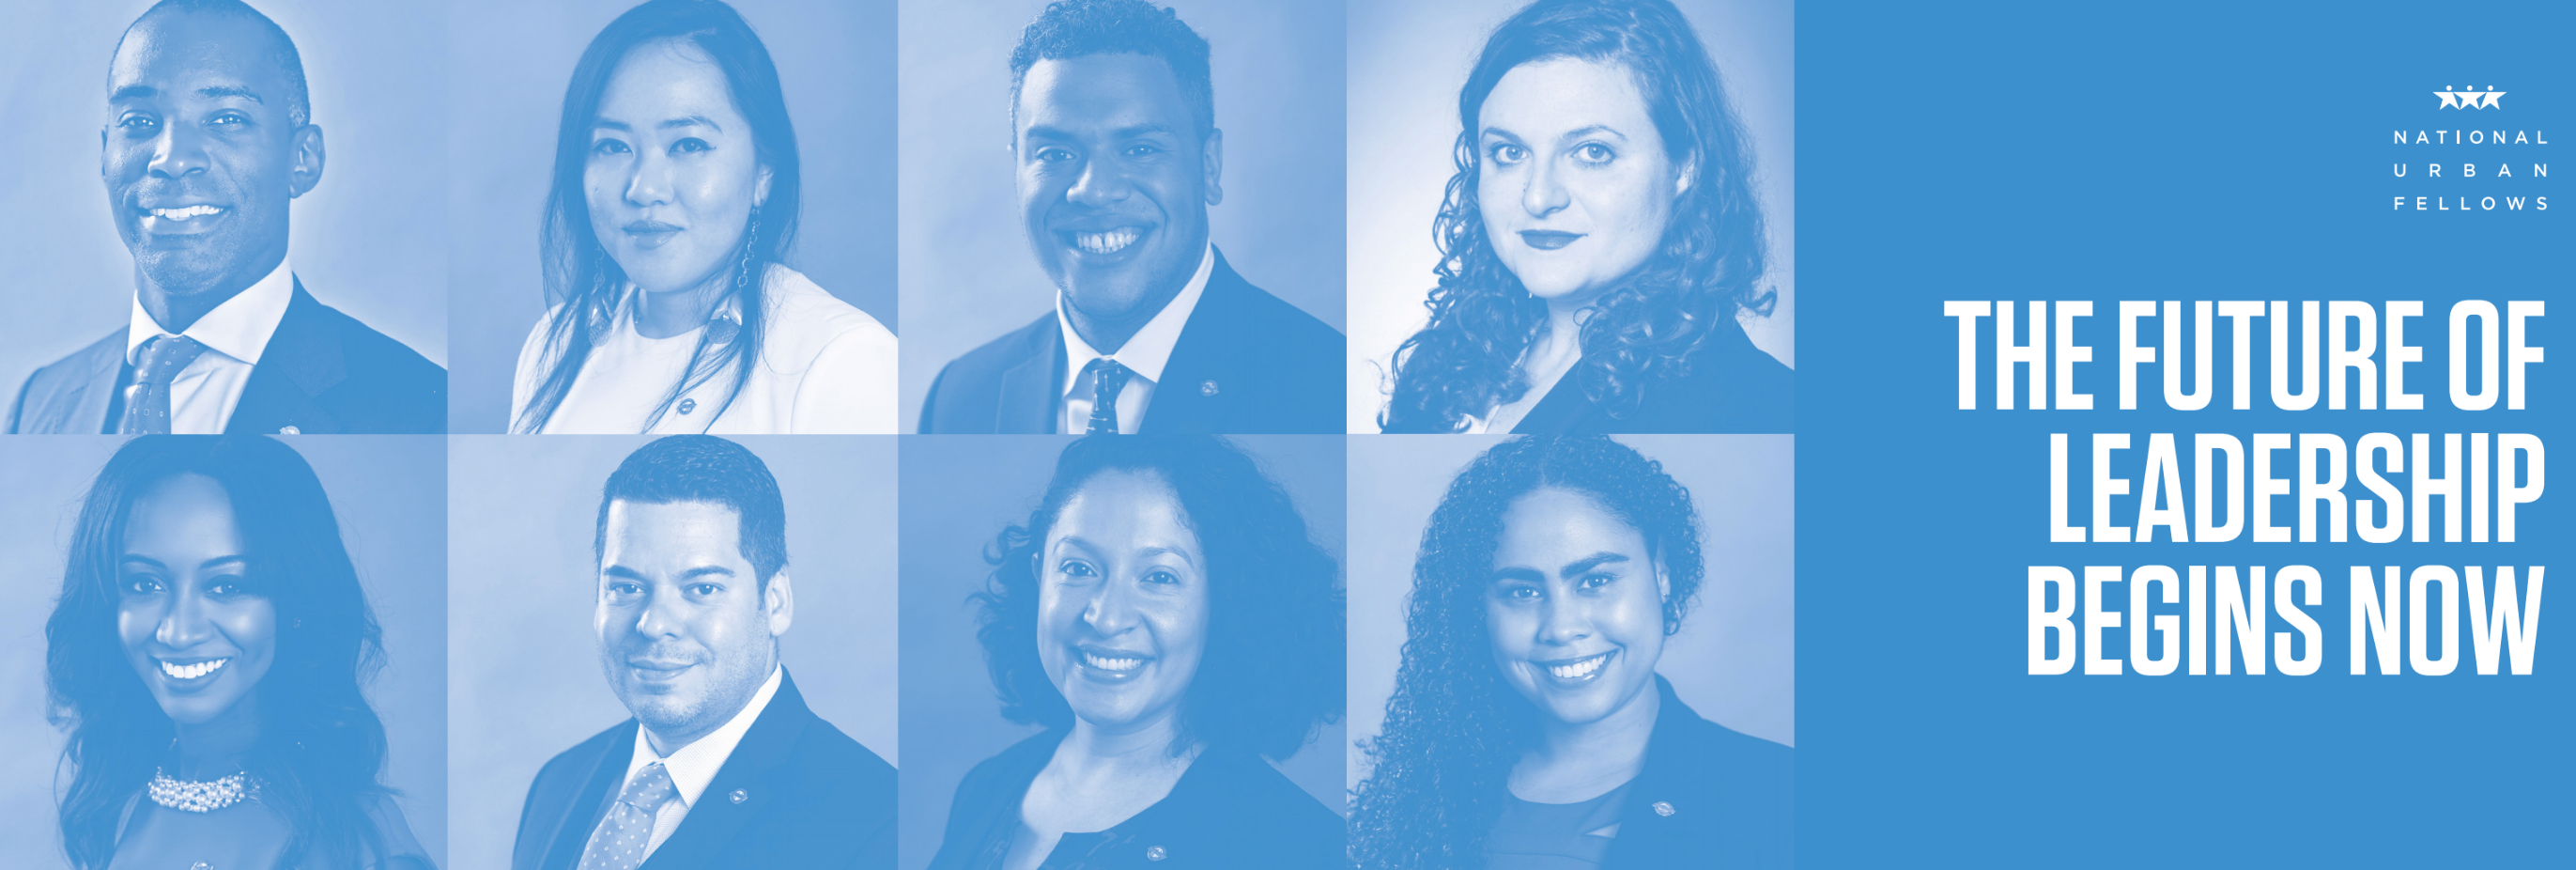 Click HERE to read our National Urban Fellows Overview